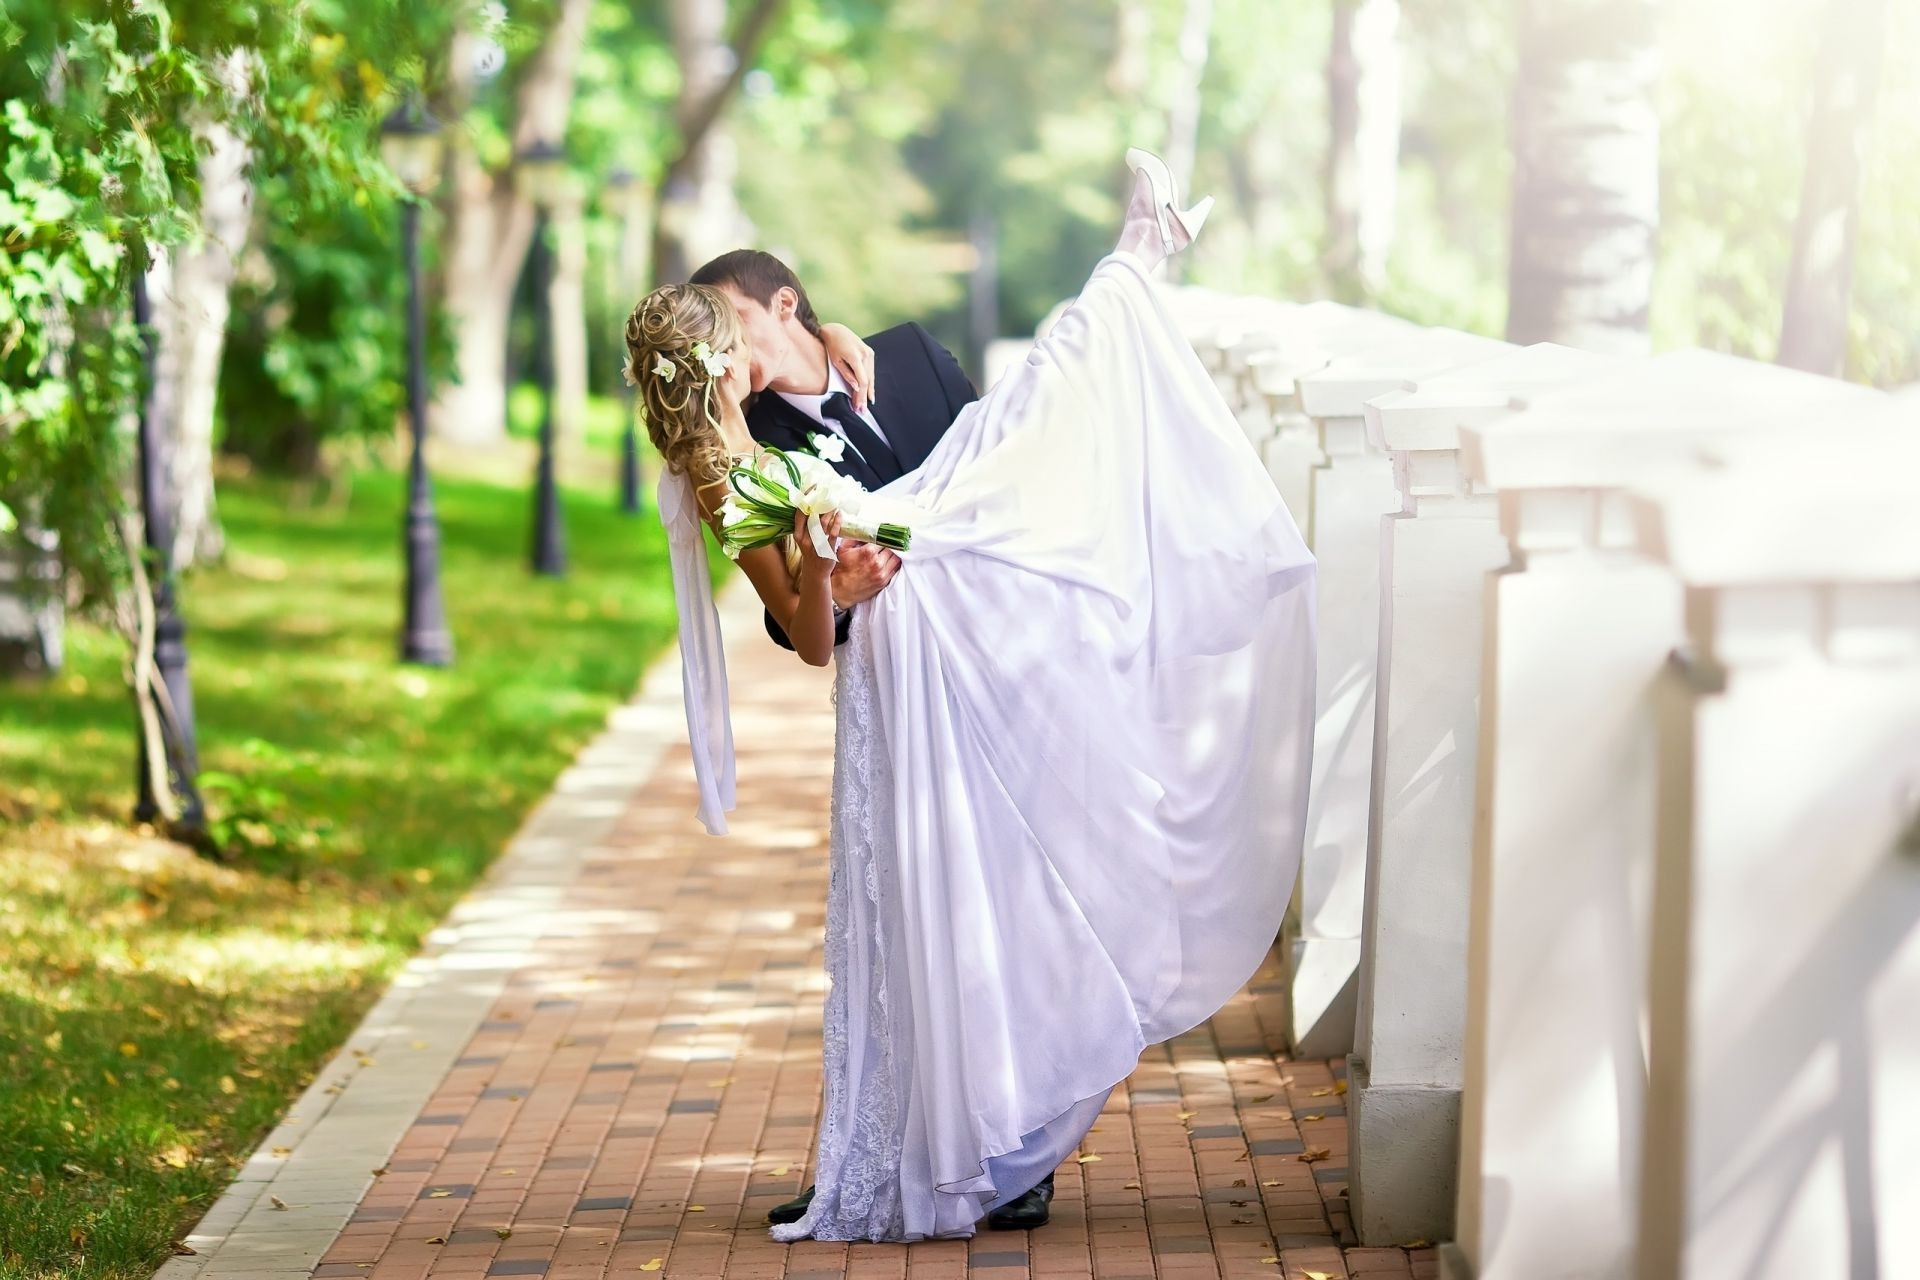 love and romance outdoors nature wedding summer woman love bride veil relaxation leisure marriage young man fair weather groom